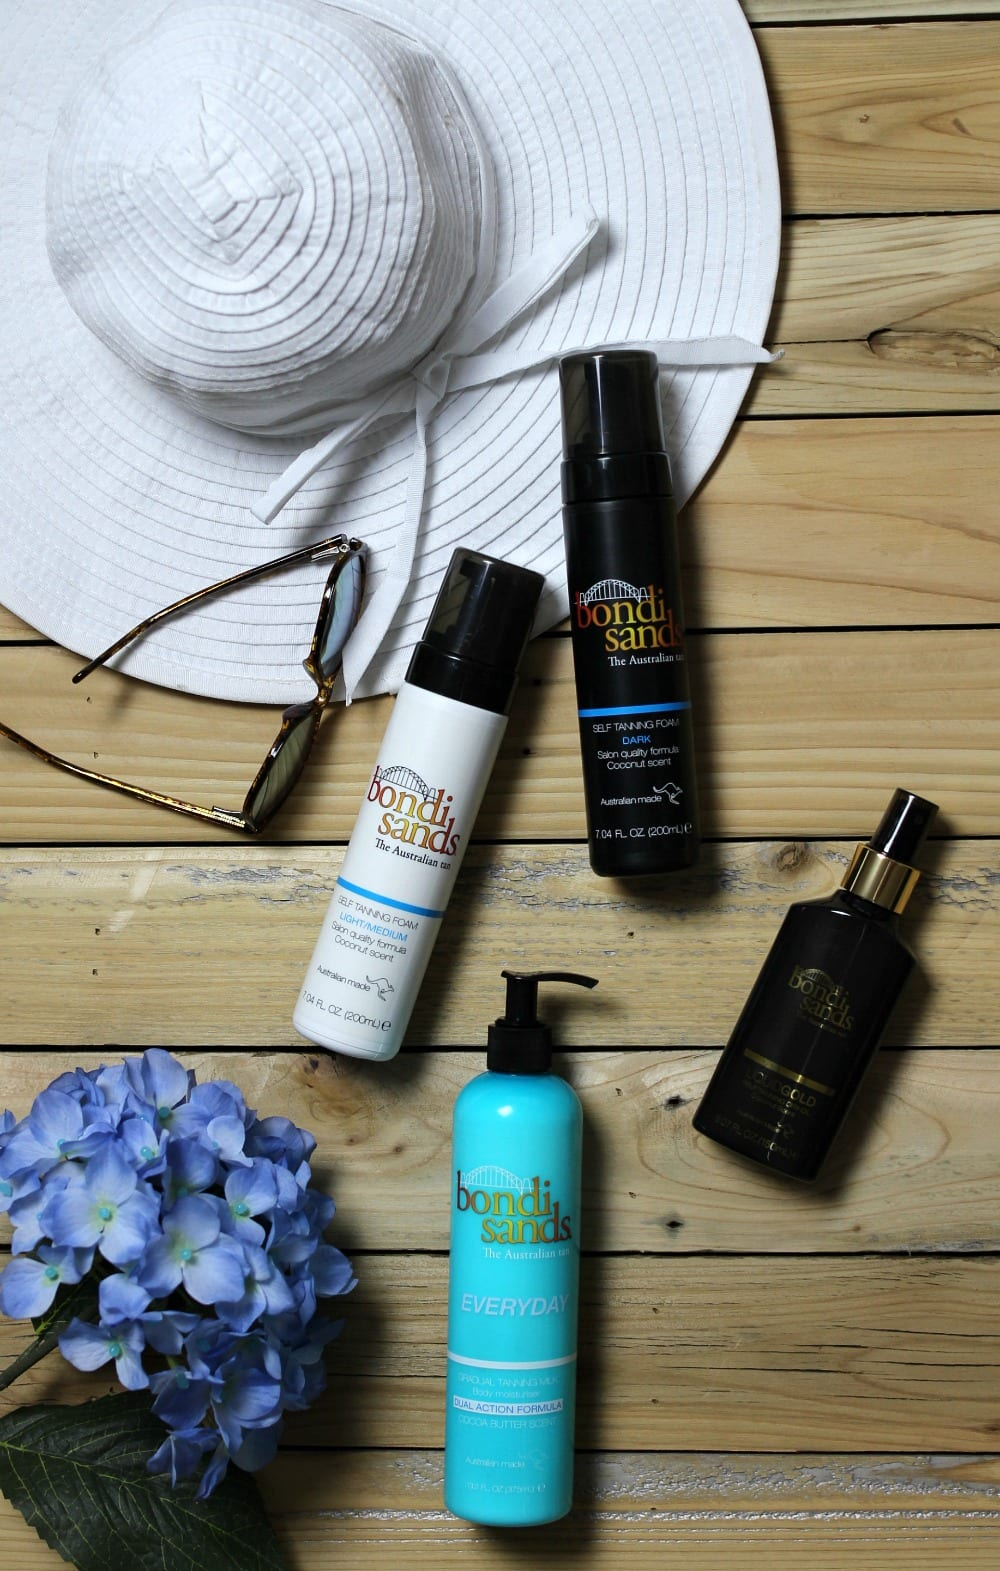 Do you want a summer tan without the sun? Read on to see how sunless tanning products can give you a gorgeous glow with some of my best sunless tanning tips and hacks.